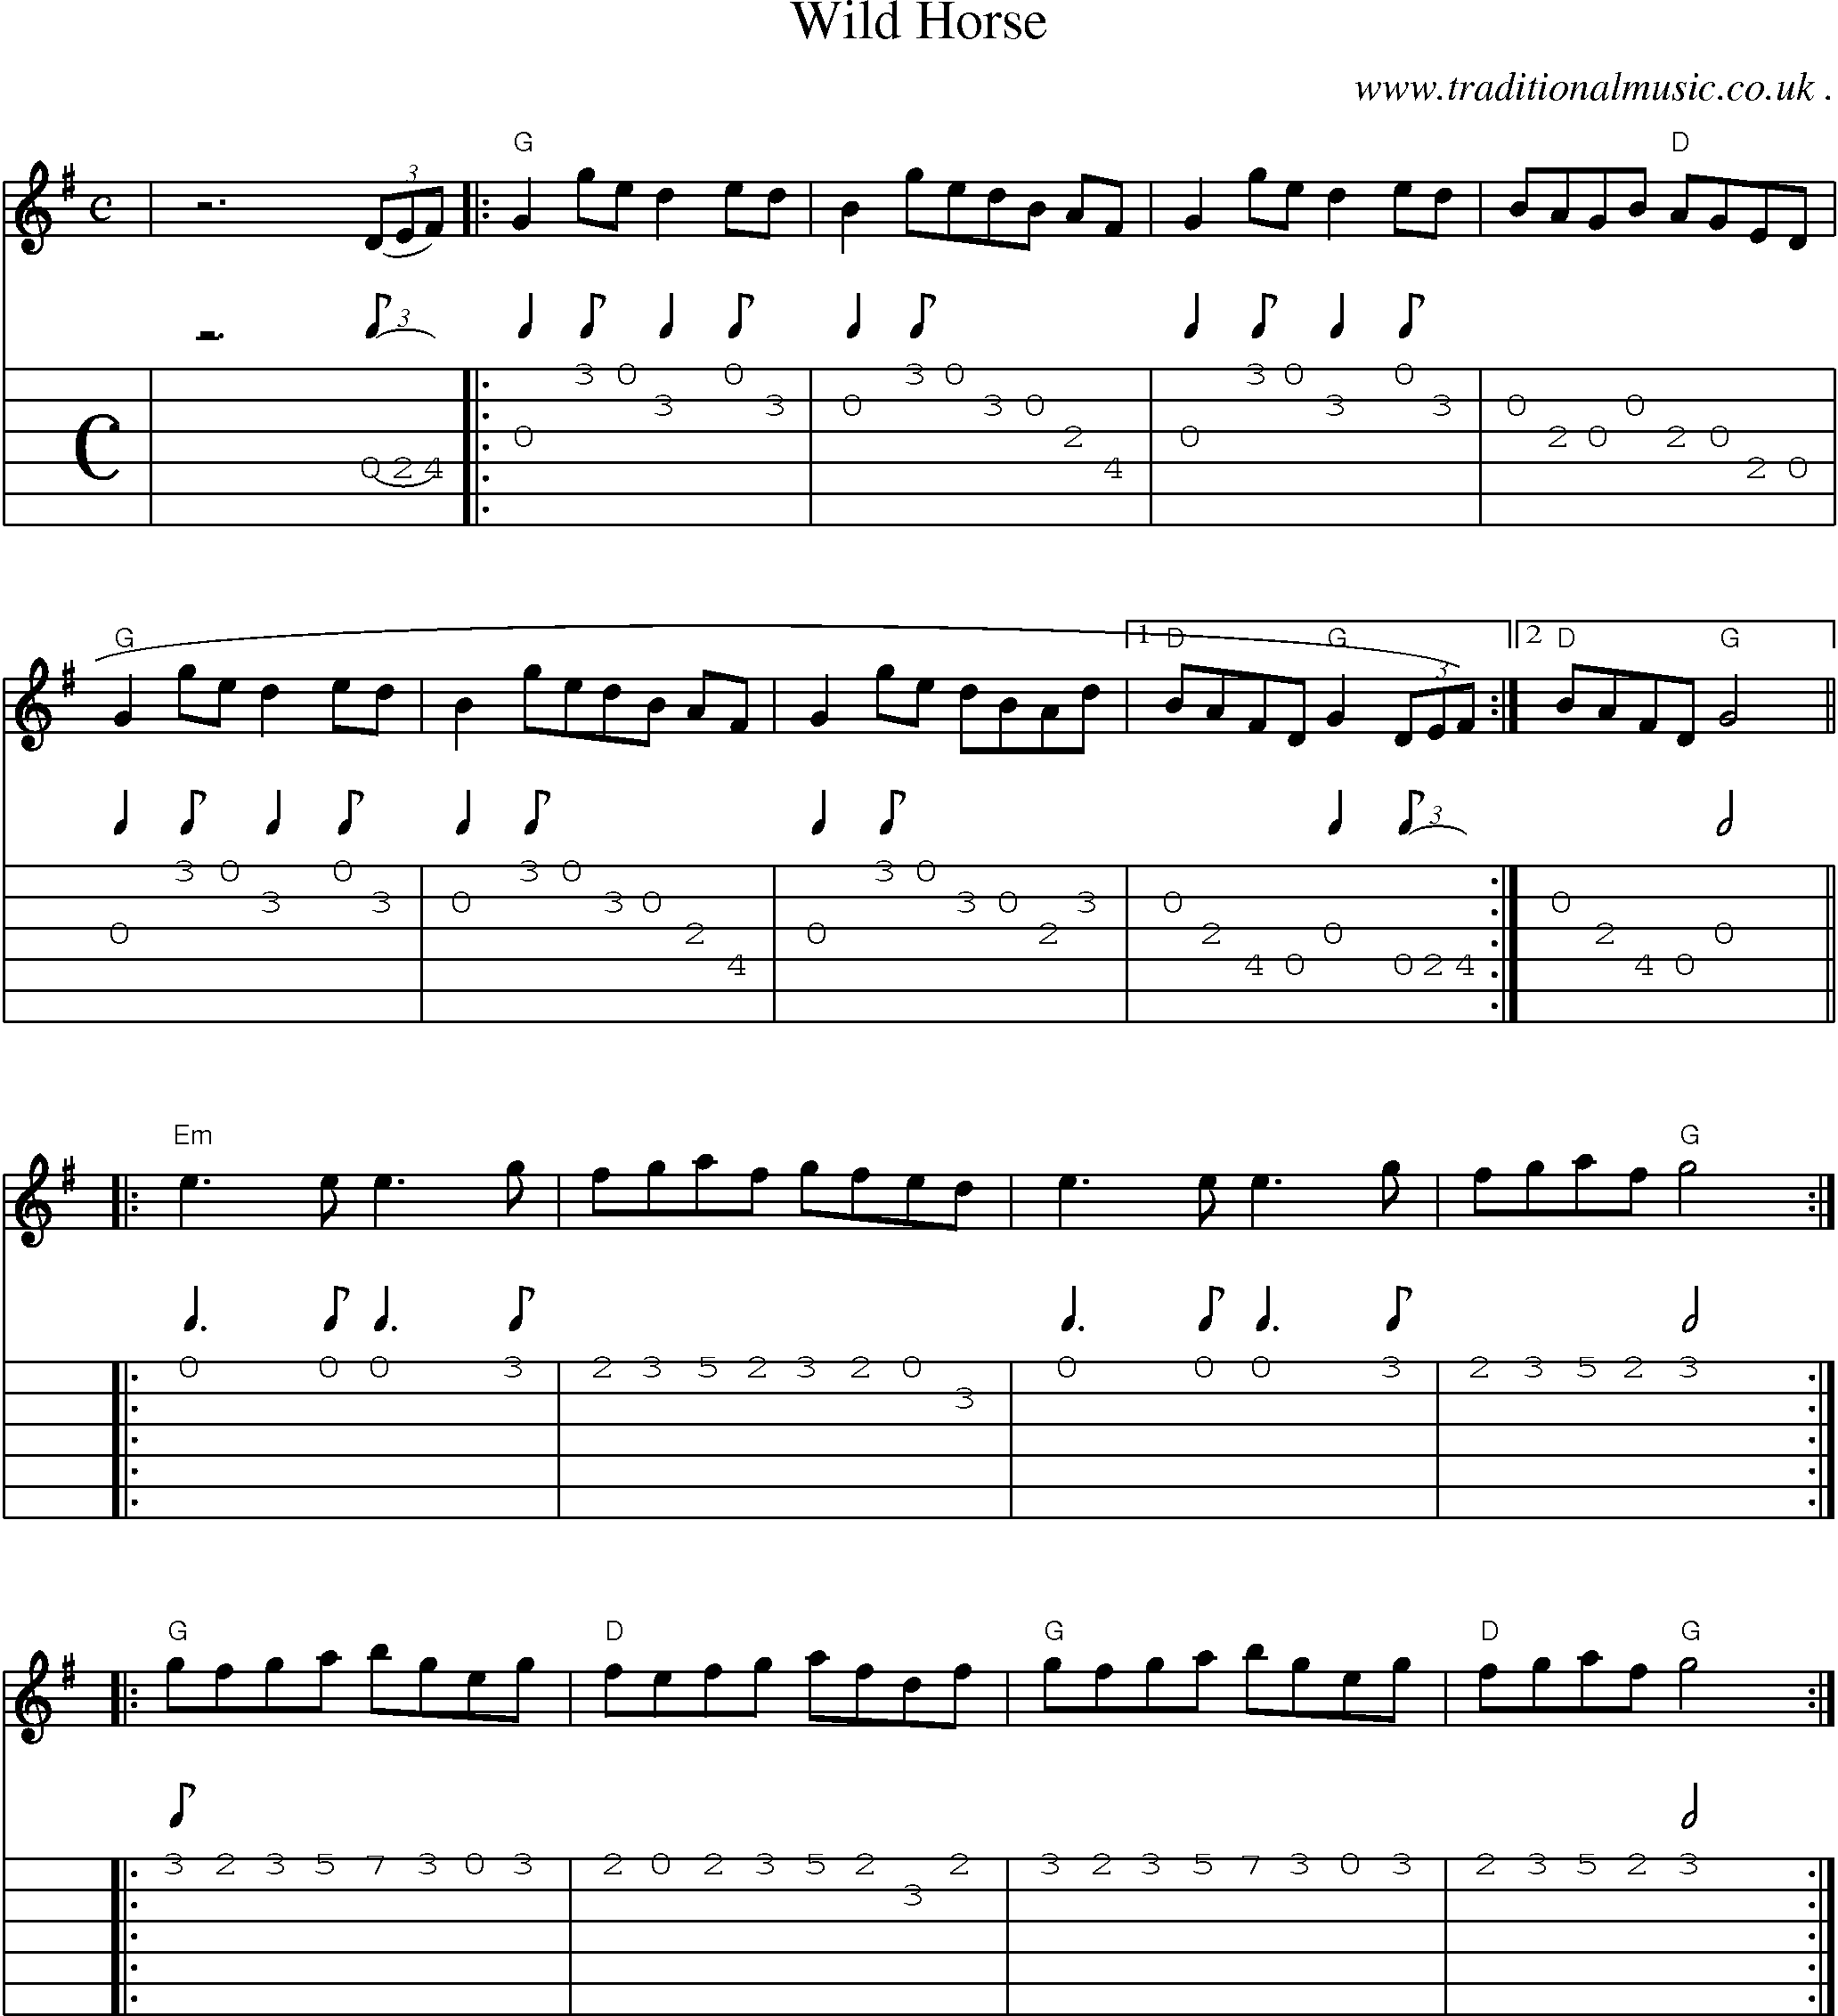 Common Session Tunes Scores And Tabs For Guitar Wild Horse